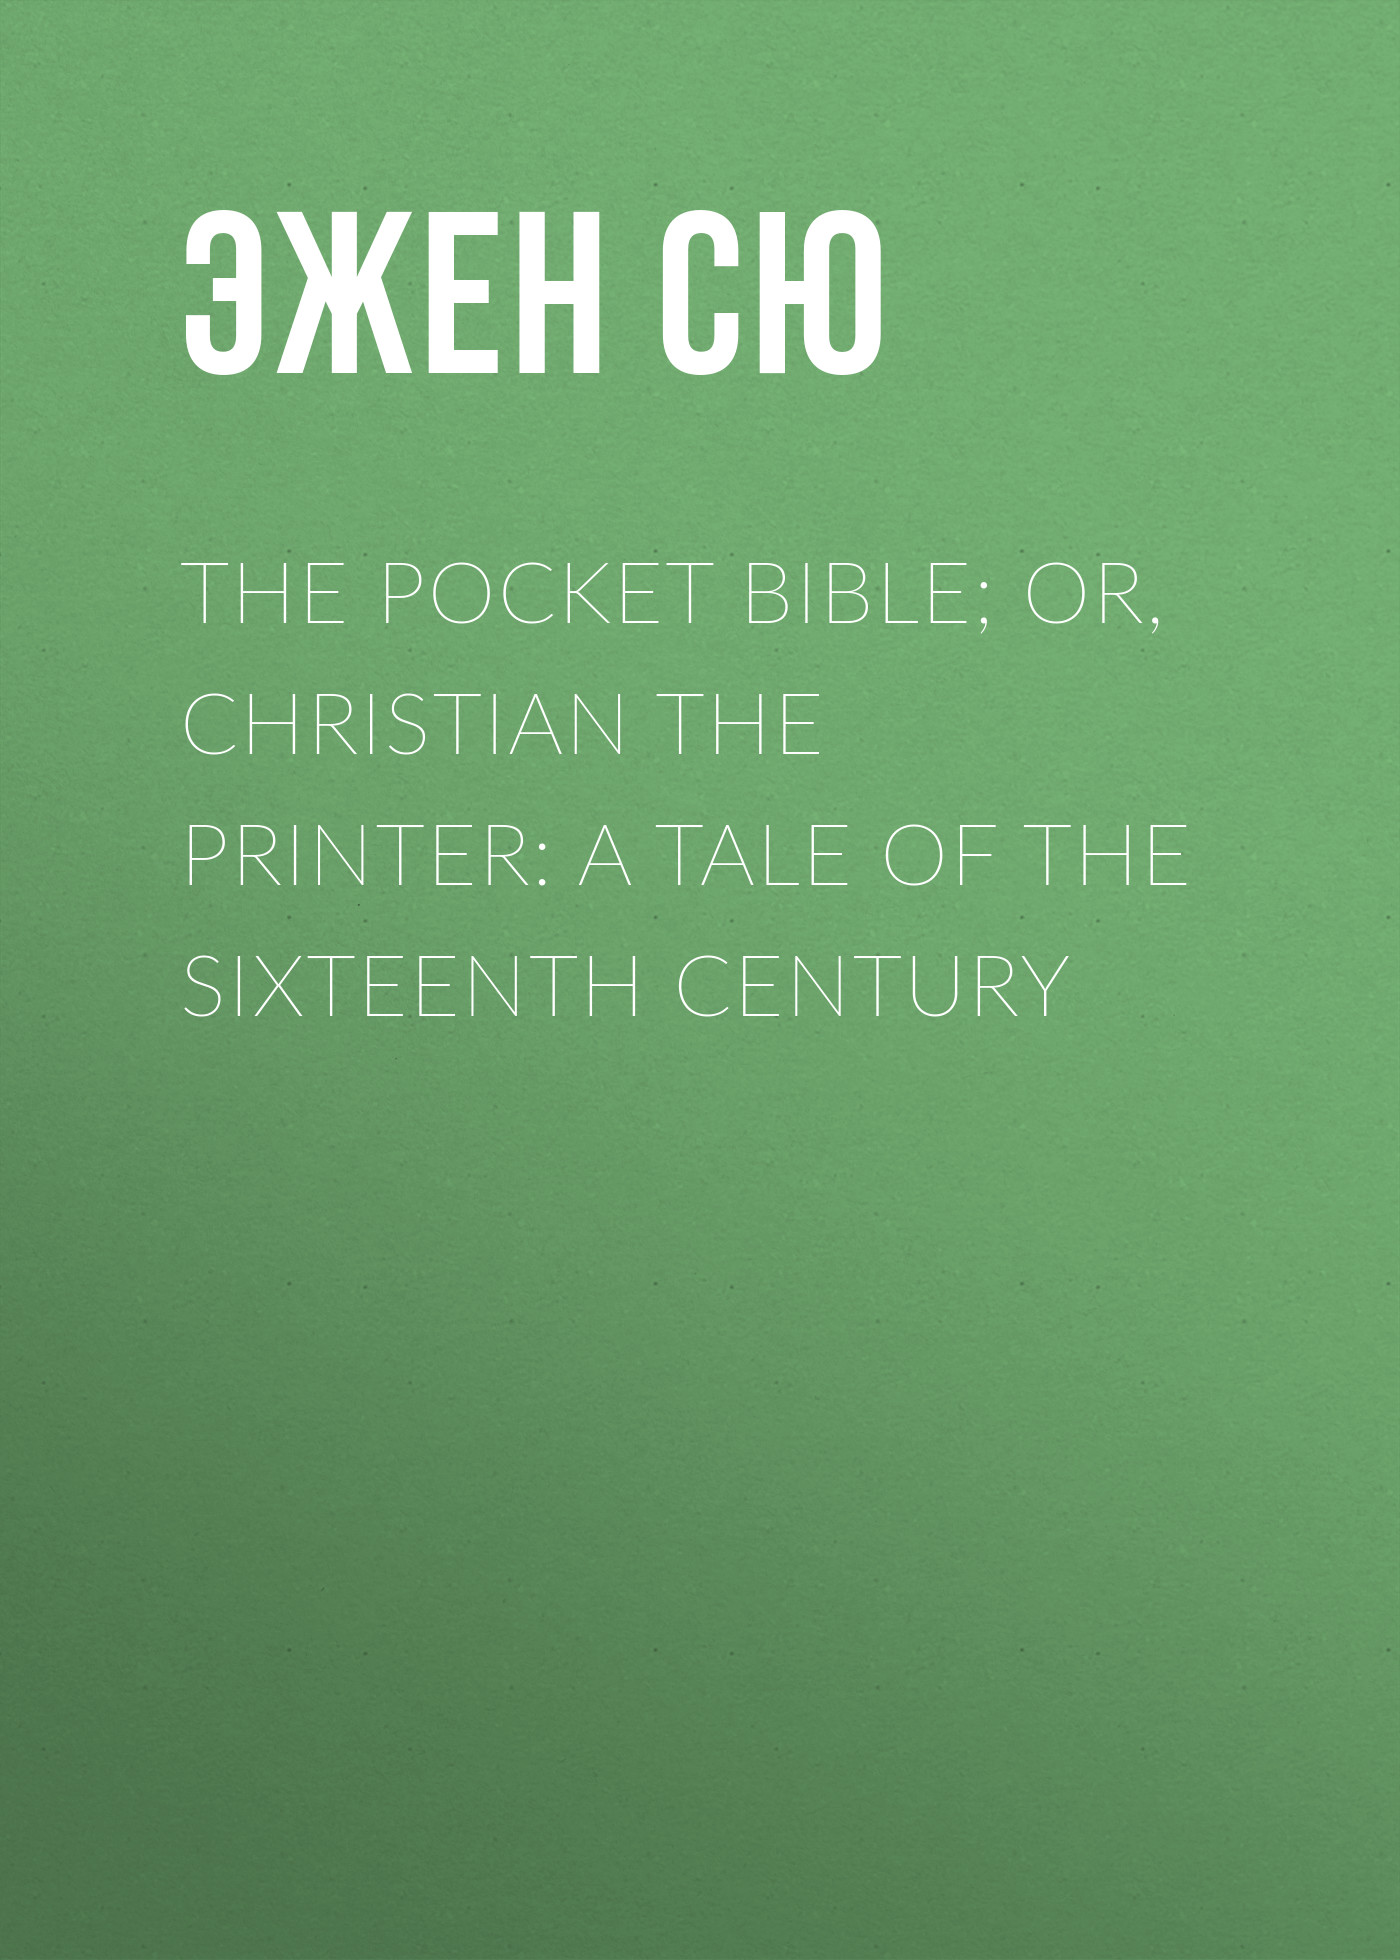 Эжен Сю The Pocket Bible; or, Christian the Printer: A Tale of the Sixteenth Century вальтер скотт redgauntlet a tale of the eighteenth century